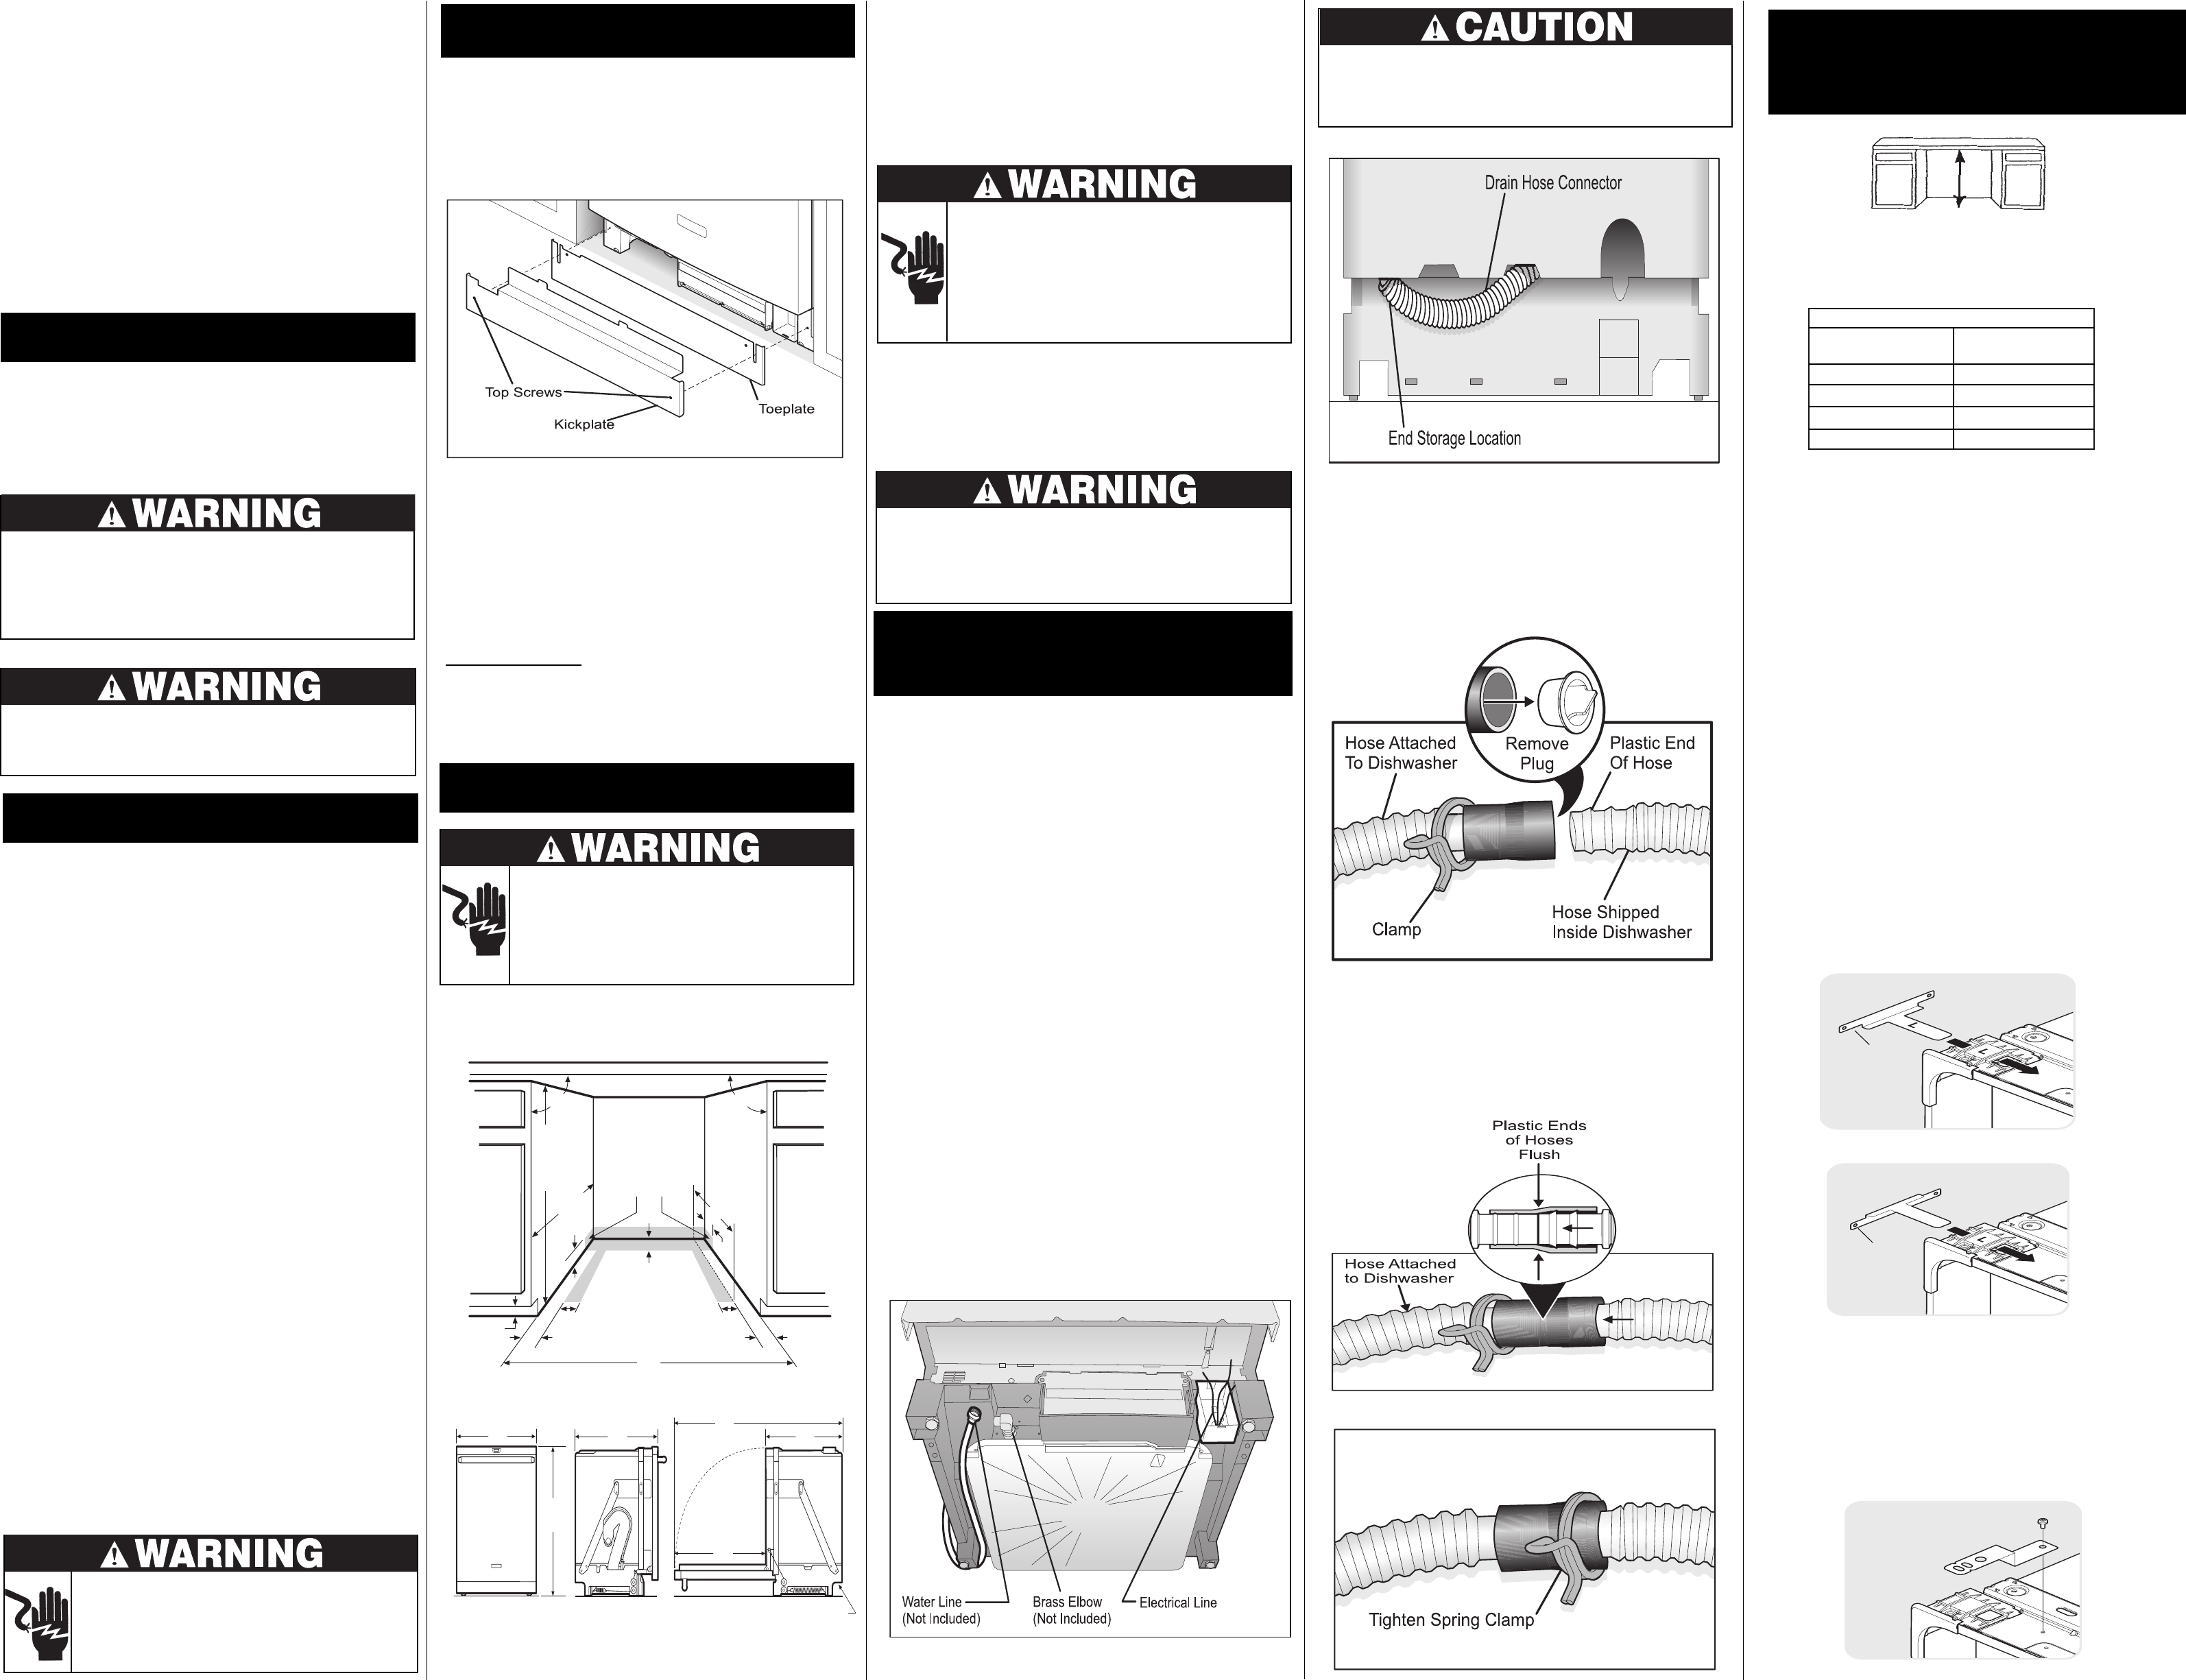 electrolux dishwasher edw7505hps user guide manualsonline com Instruction Manual User Guide Template